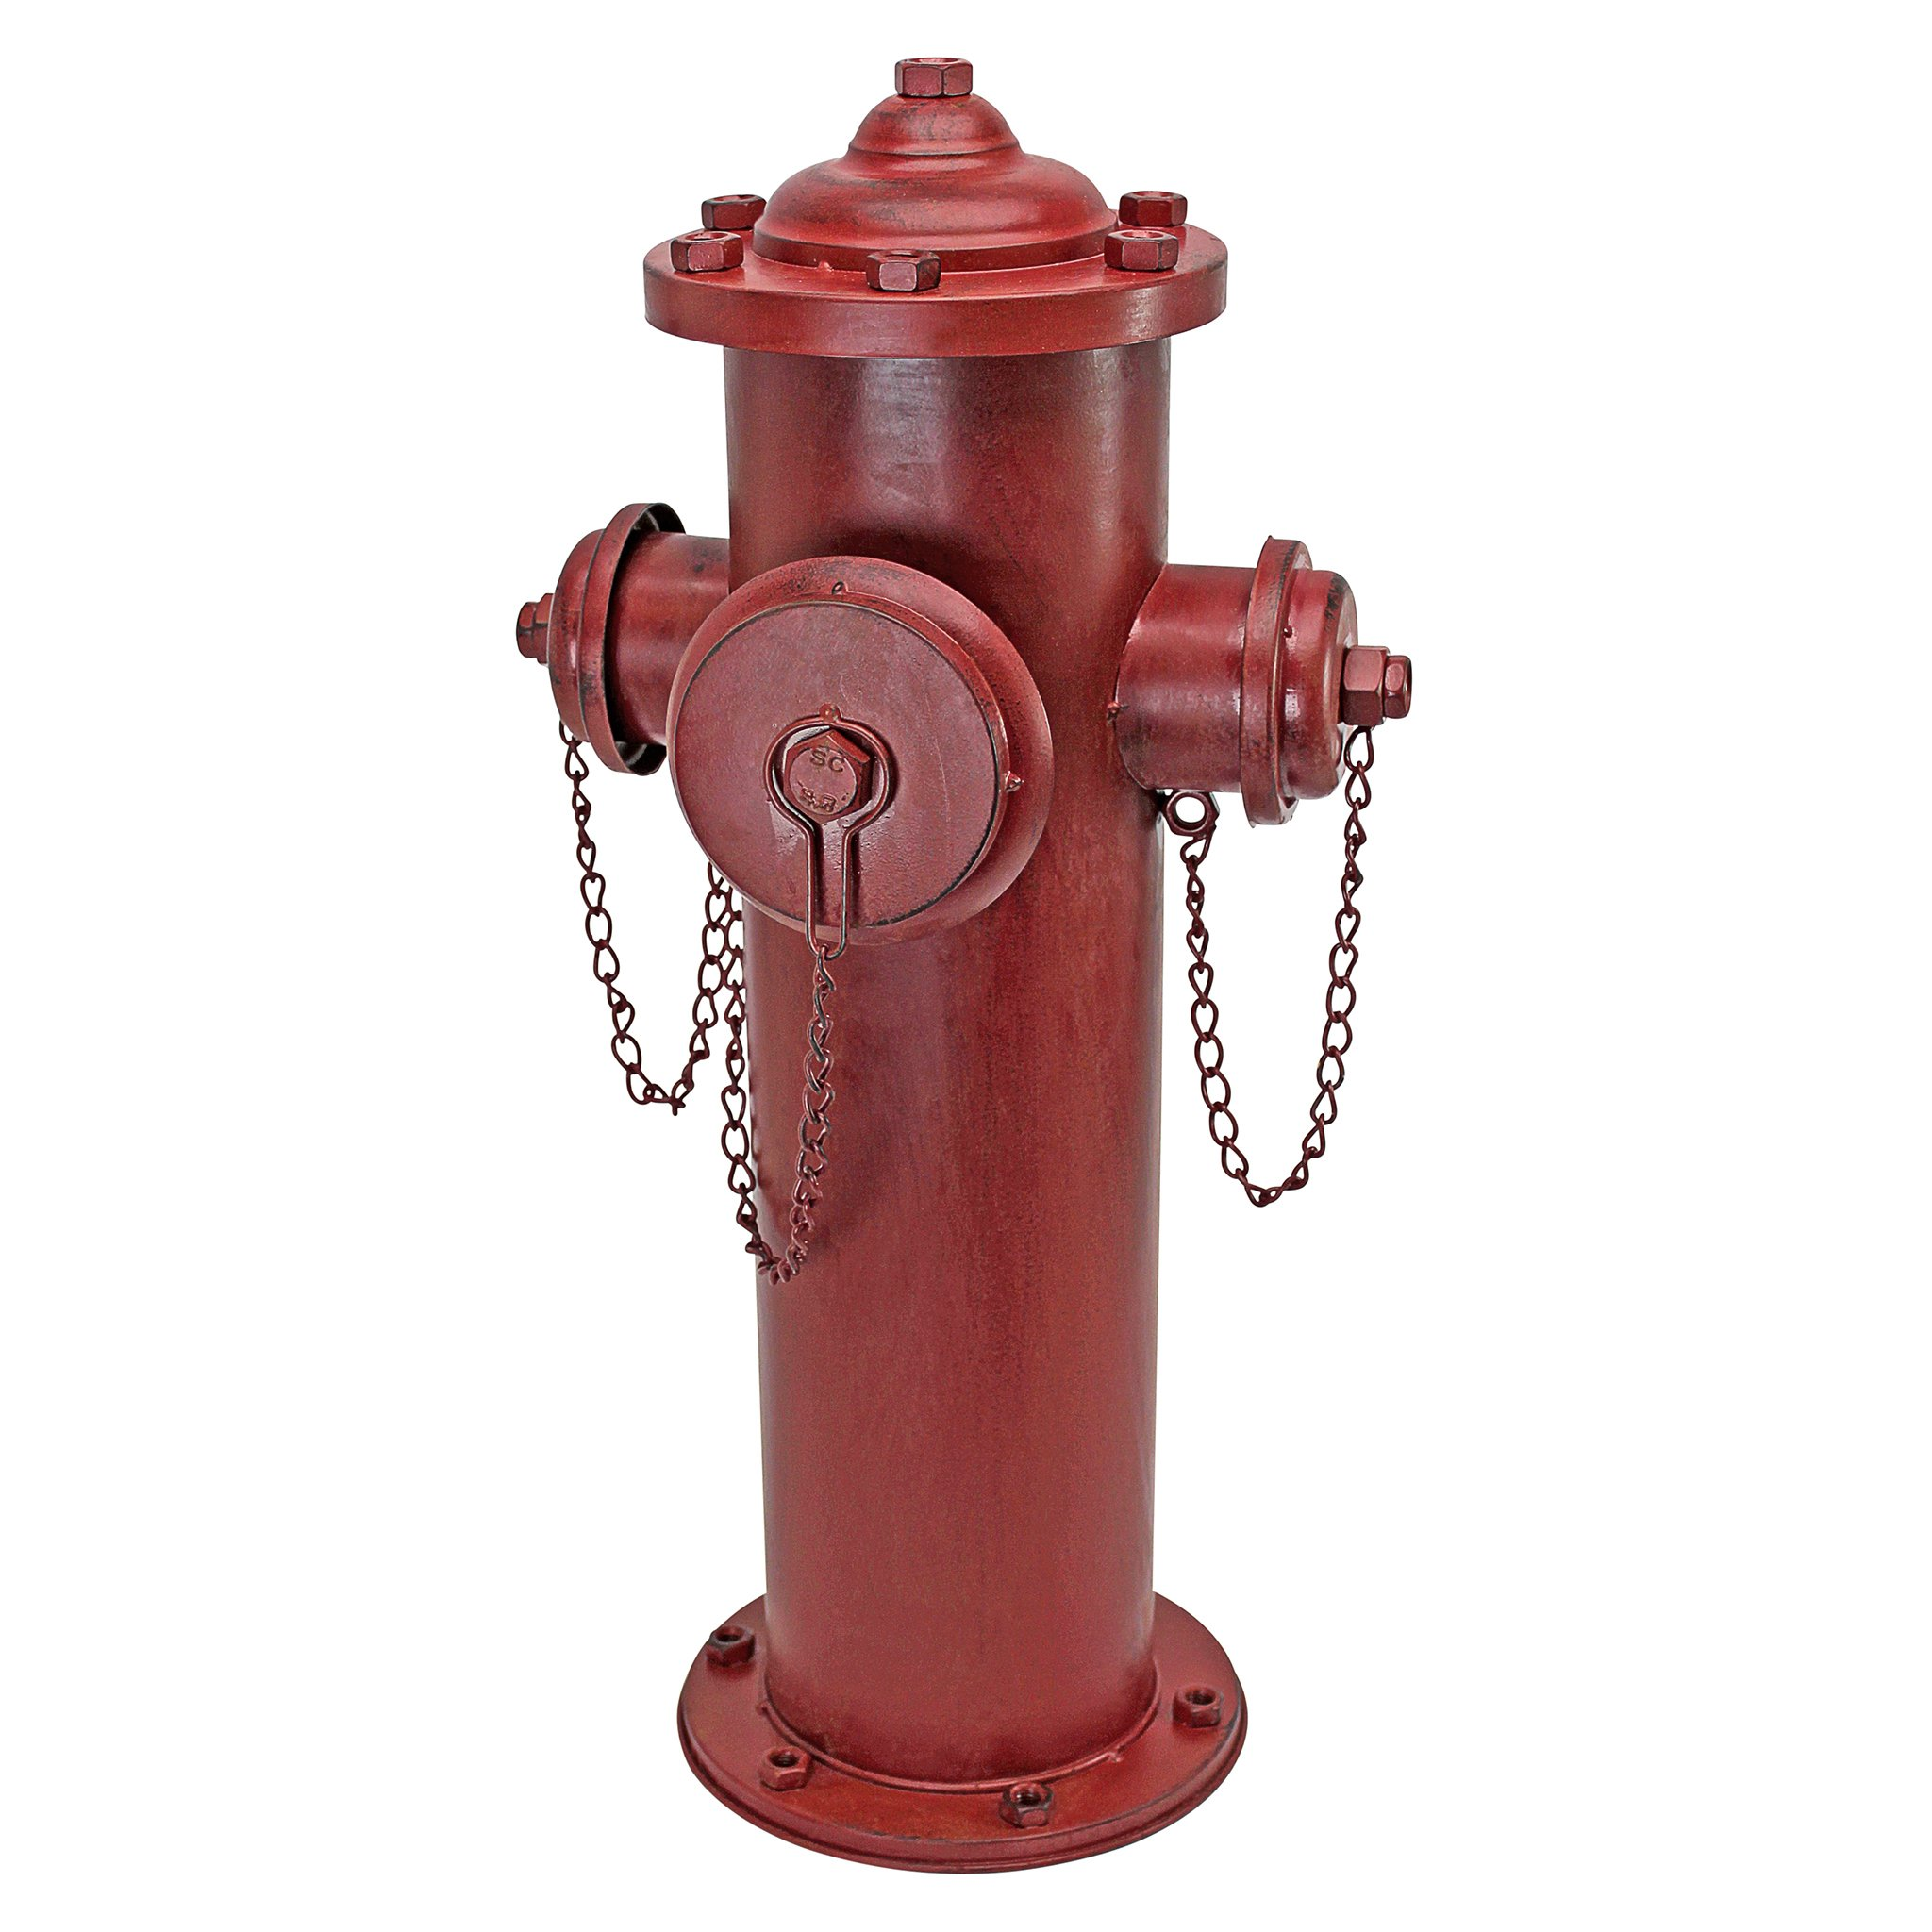 Design Toscano Fire Hydrant Statue Puppy Pee Post and Pet Storage Container, Large 23 Inch, Metalware, Full Color